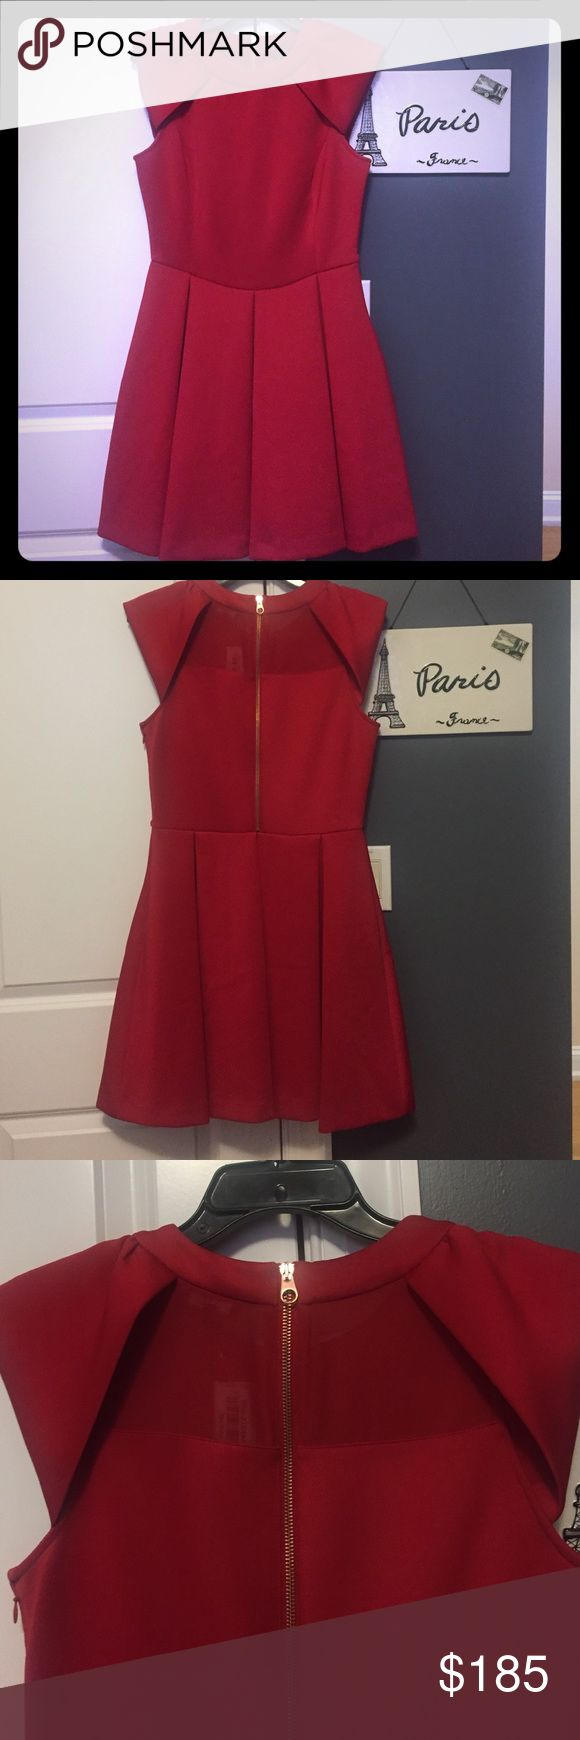 Ted Baker awesome red dress👗size 3(8) Awesome red cap sleeved a line dress with back gold zipped for style and side zipper (both work), with mesh upper back. Purchase at Saks Fifth Avenue for a wedding and never wore it! Size 3 equals size 8. 34.5 inches long, 14 waist across and 16 armpit to armpit Ted Baker London Dresses